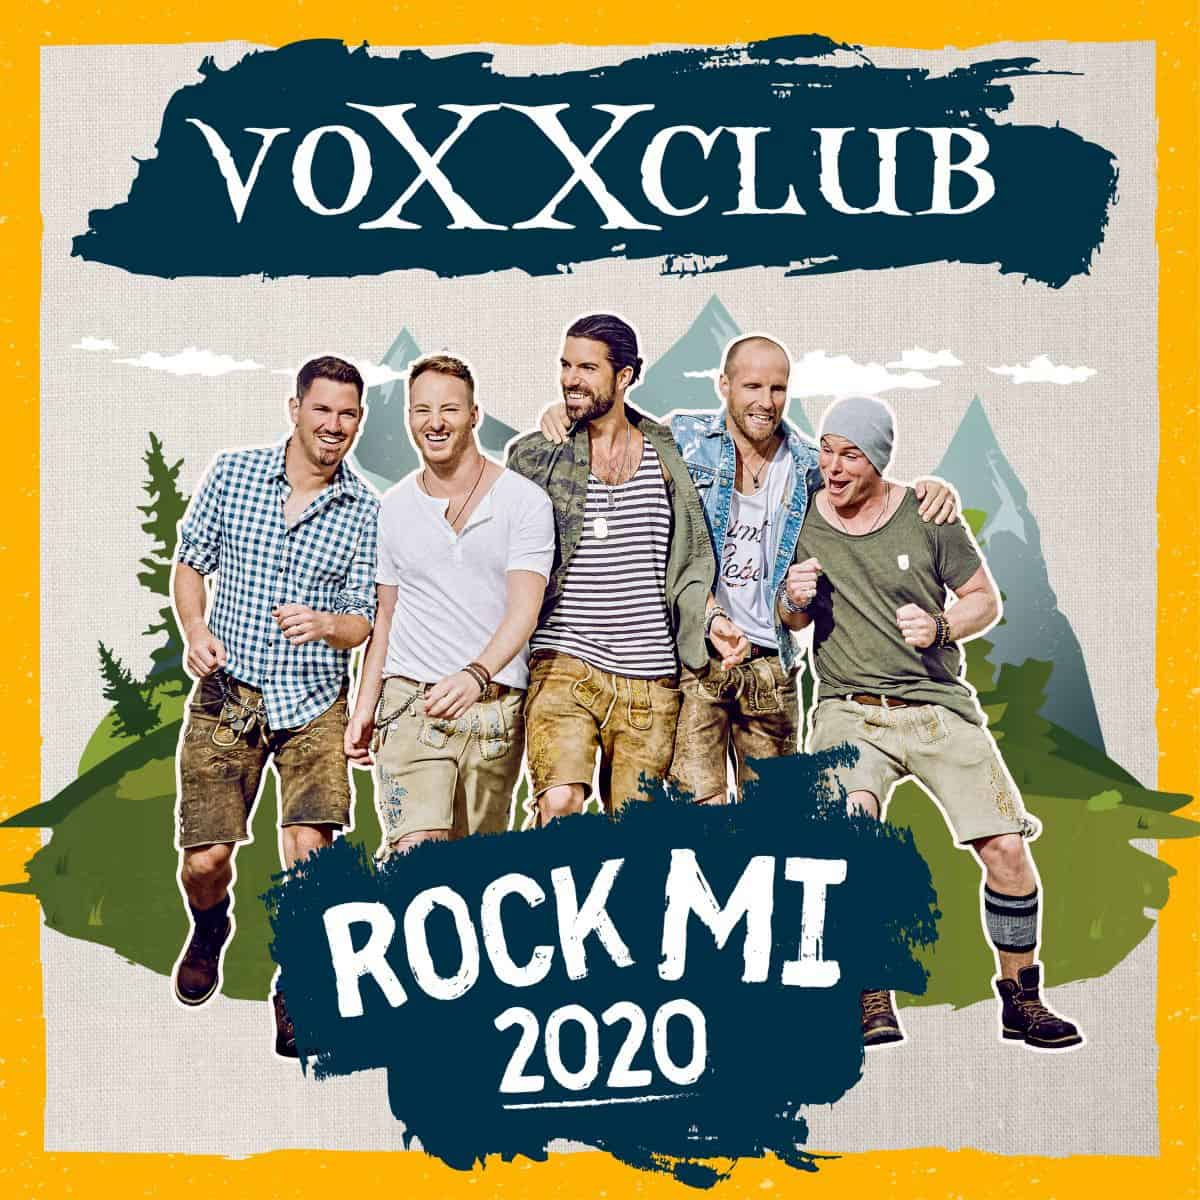 Voxxclub - Rock mi (Version 2020)